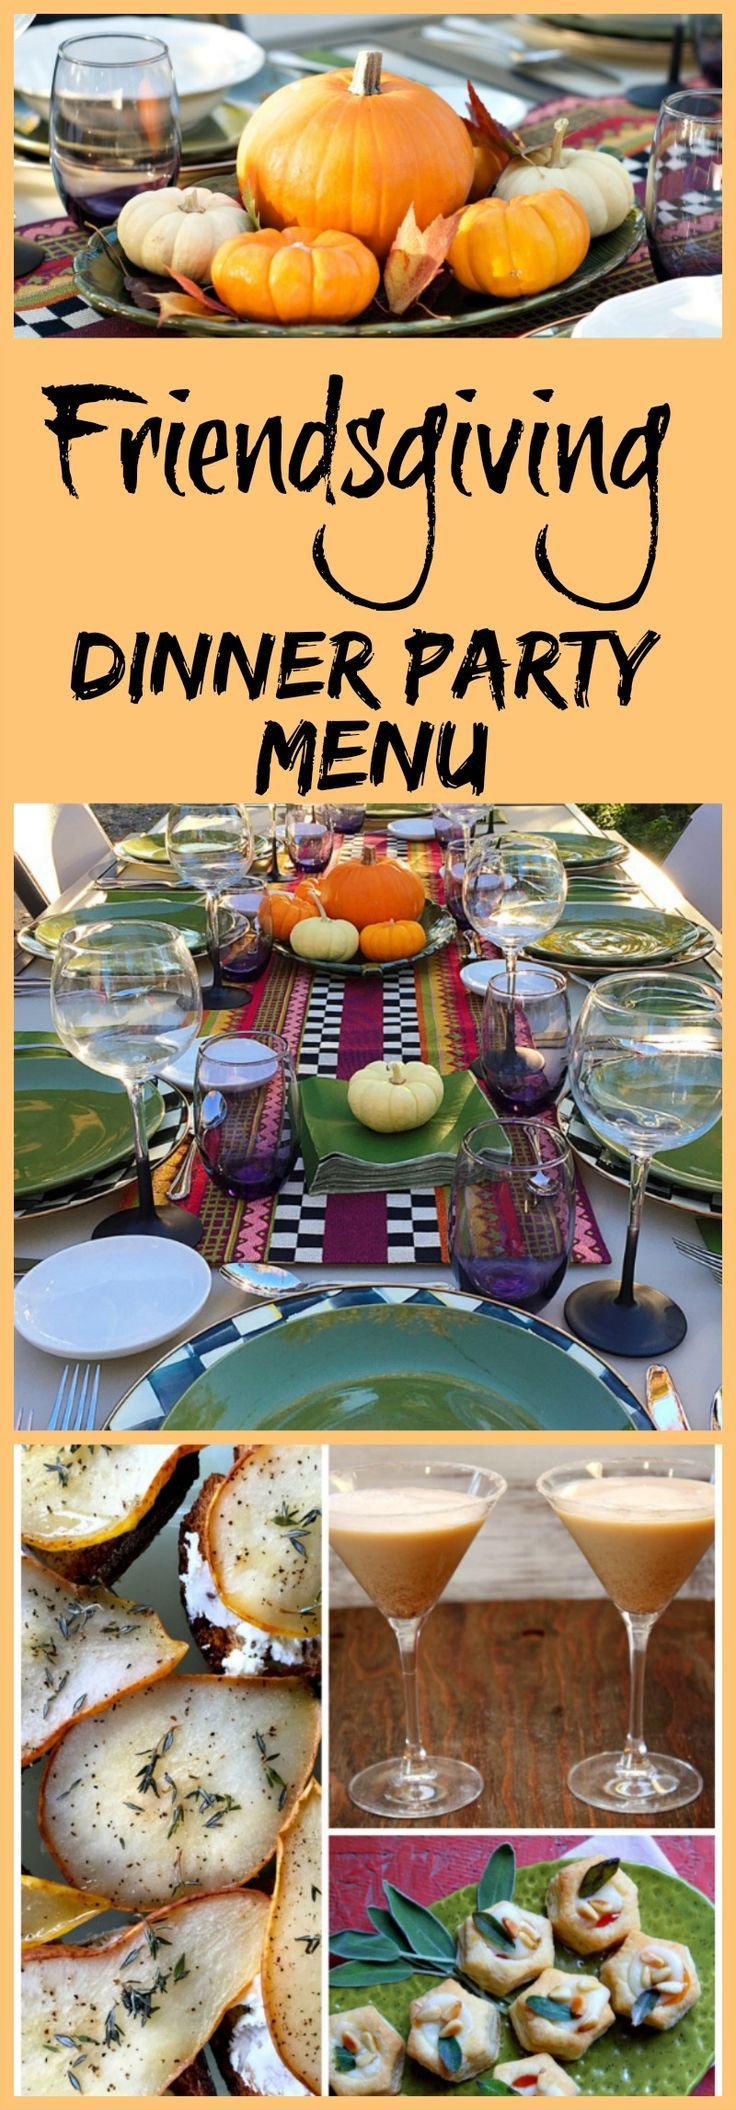 Fall Dinner Party Menu  How to Host a Friendsgiving Dinner Party Recipes decor